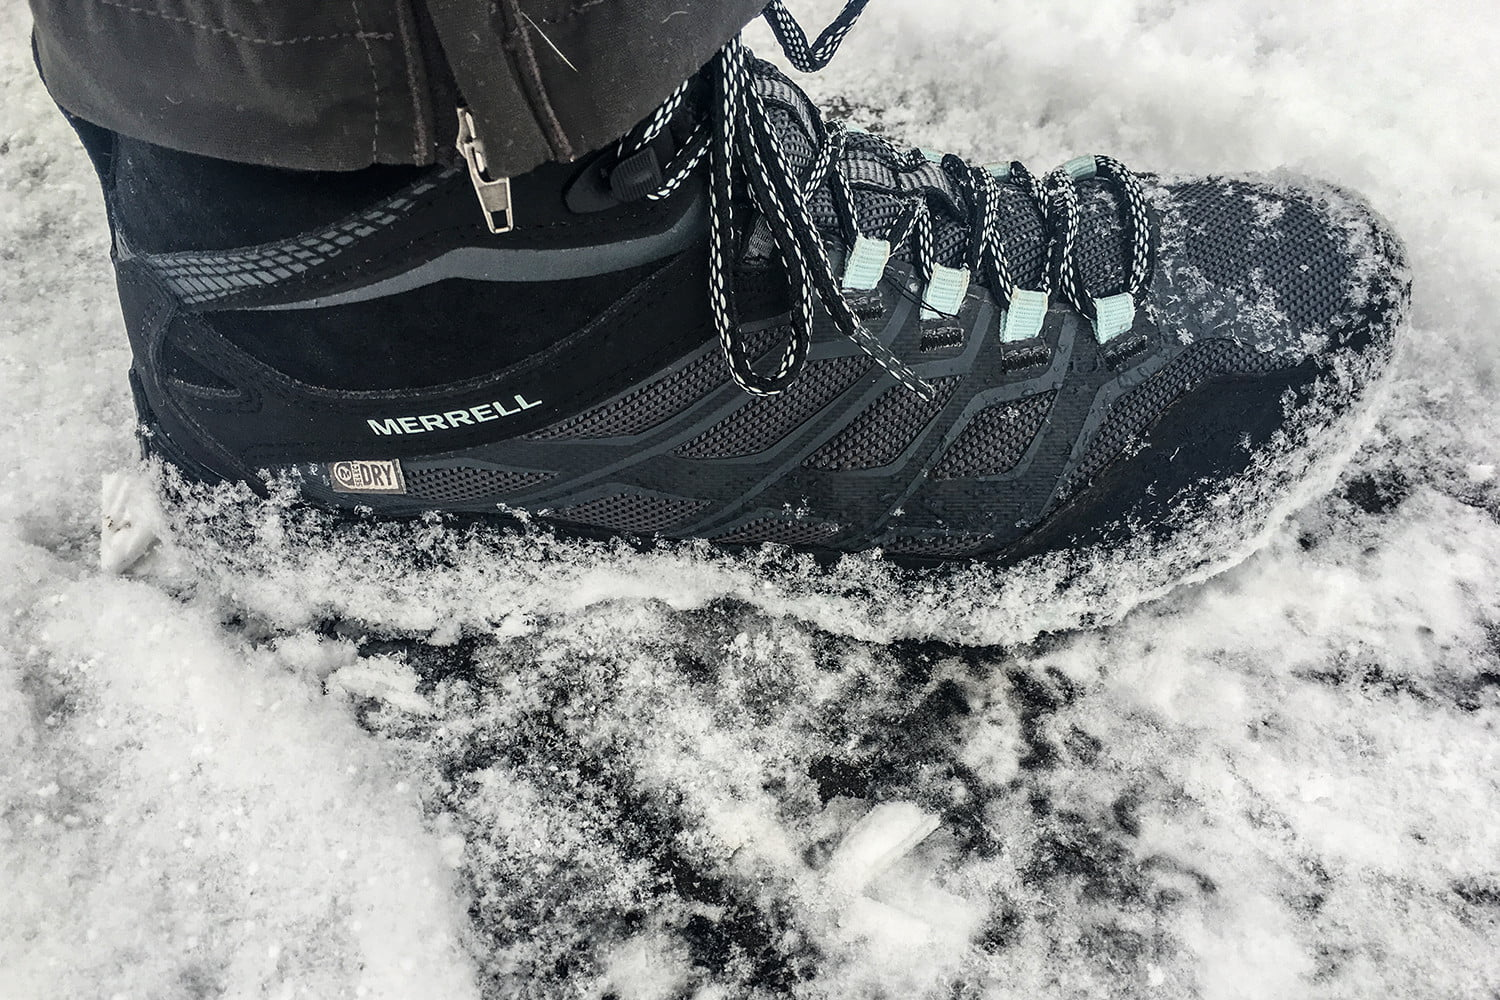 b70347d2845 Vibram Arctic Grip Sole Review | No-Slip Boots 'Stick' To Ice ...